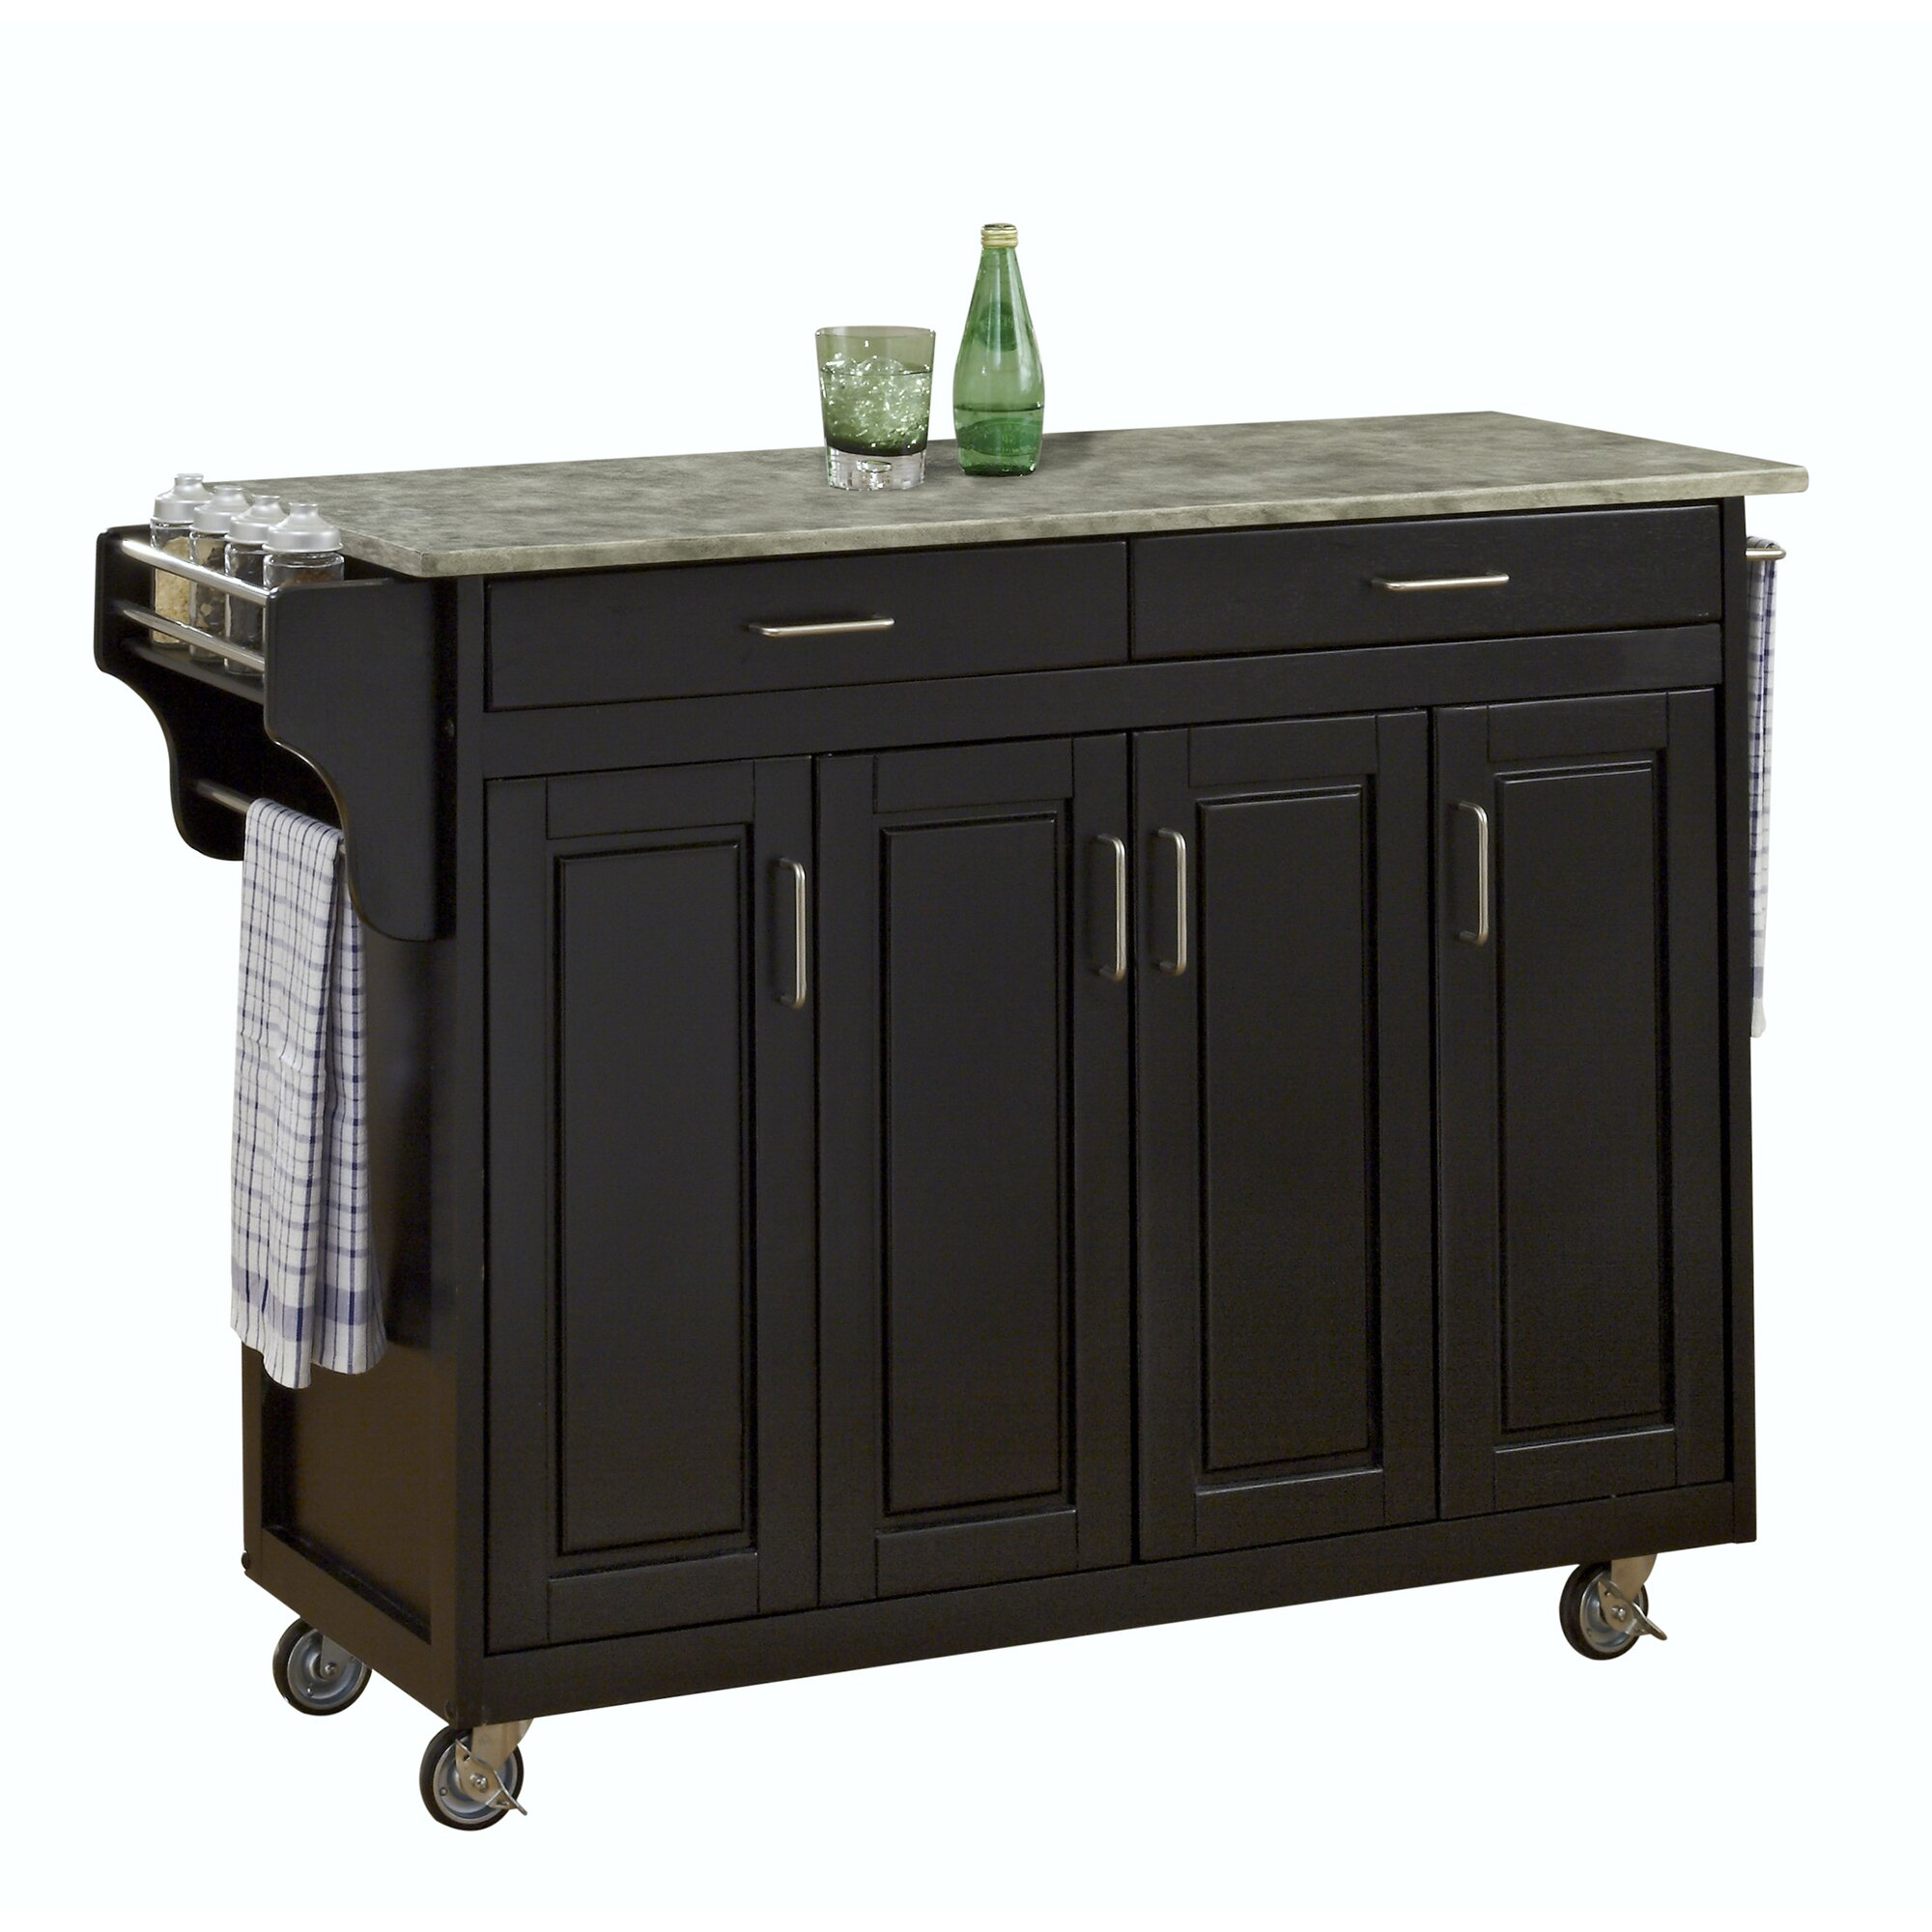 Home Styles Create-a-Cart Kitchen Island with Concrete Top